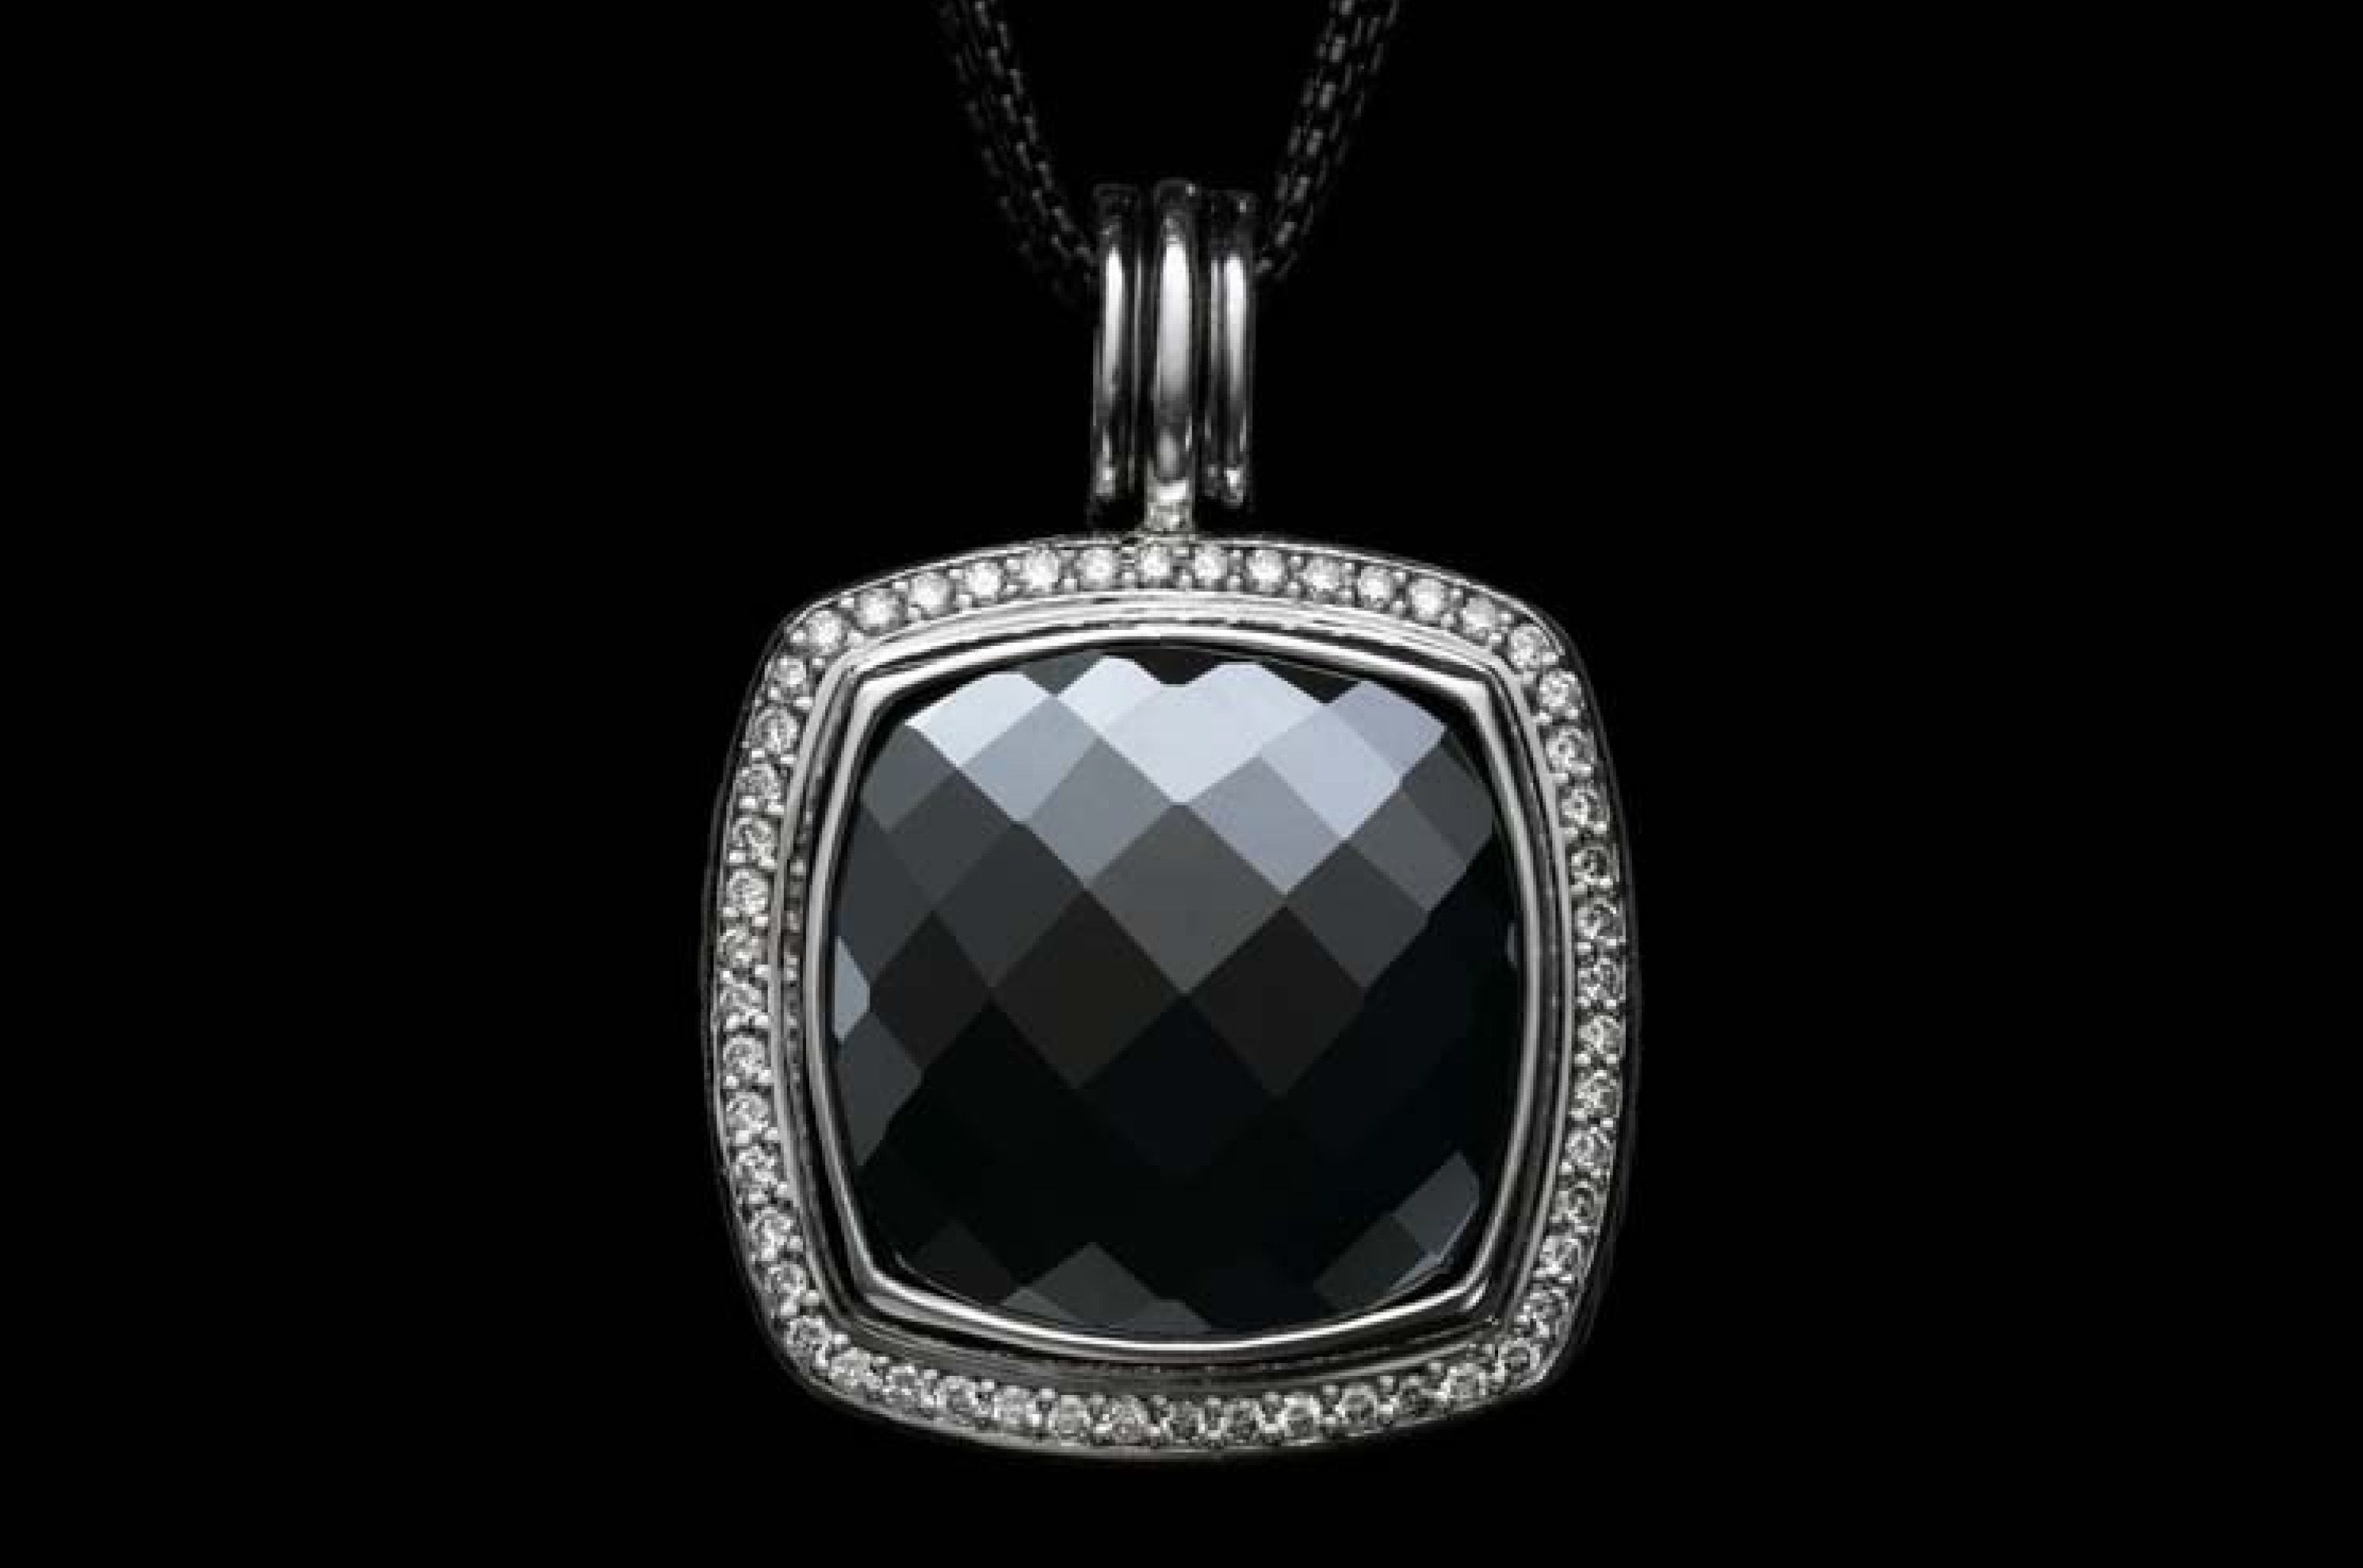 JewelryBlack_18.jpg